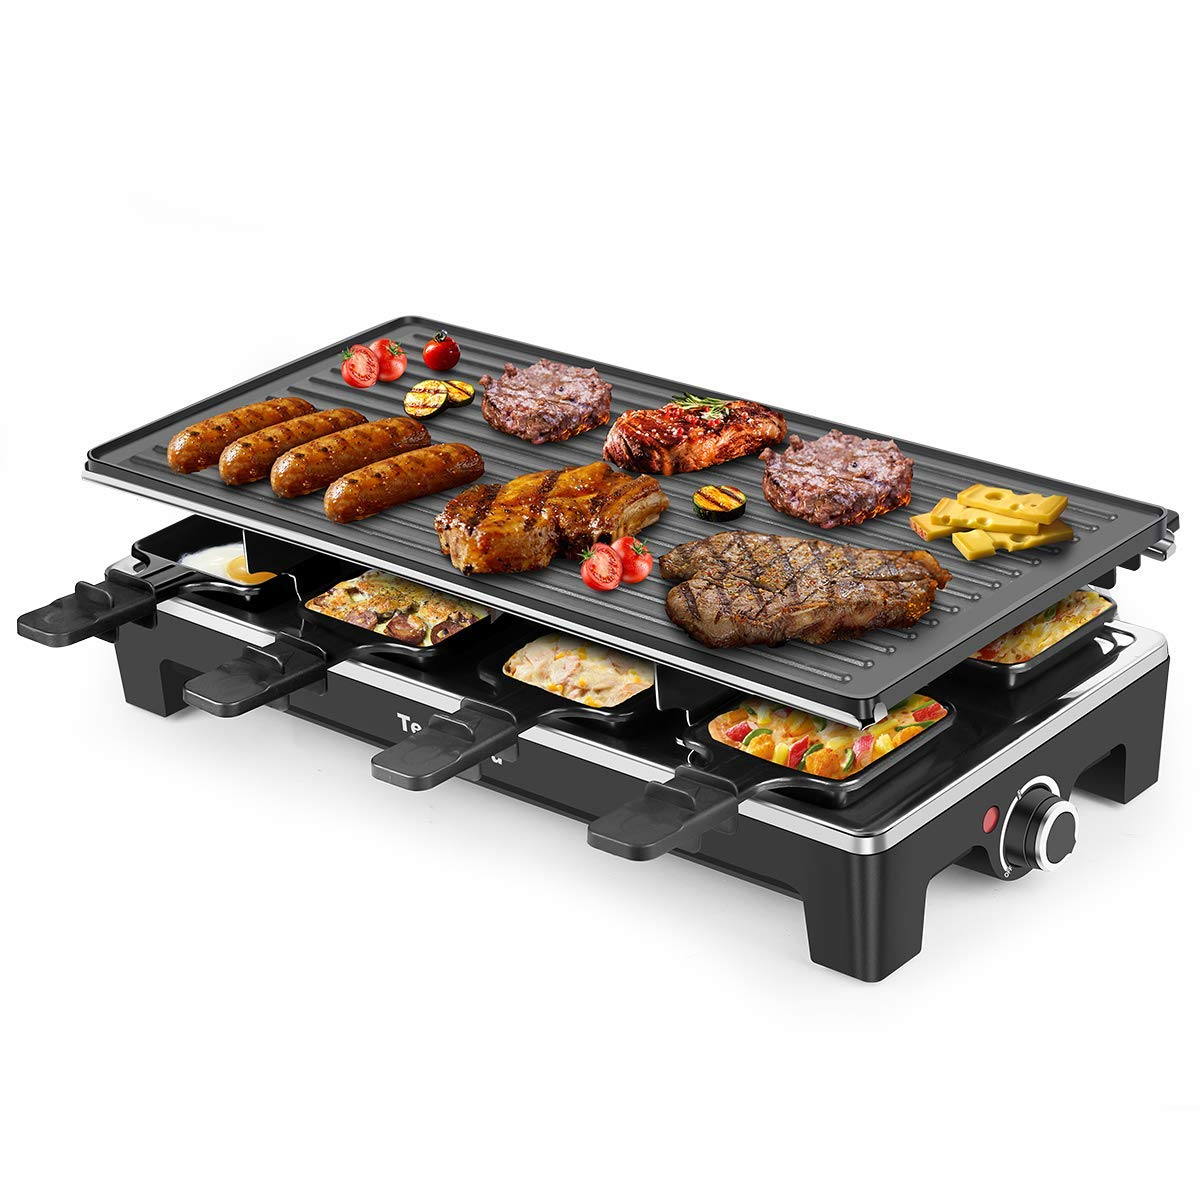 Electric Grill Techwood Raclette Grill with Double-sided Nonstick Grill Plate,8-Person Multifunctional Raclette Grill, 1500W Temperature Adjustment Function, Black by Techwood